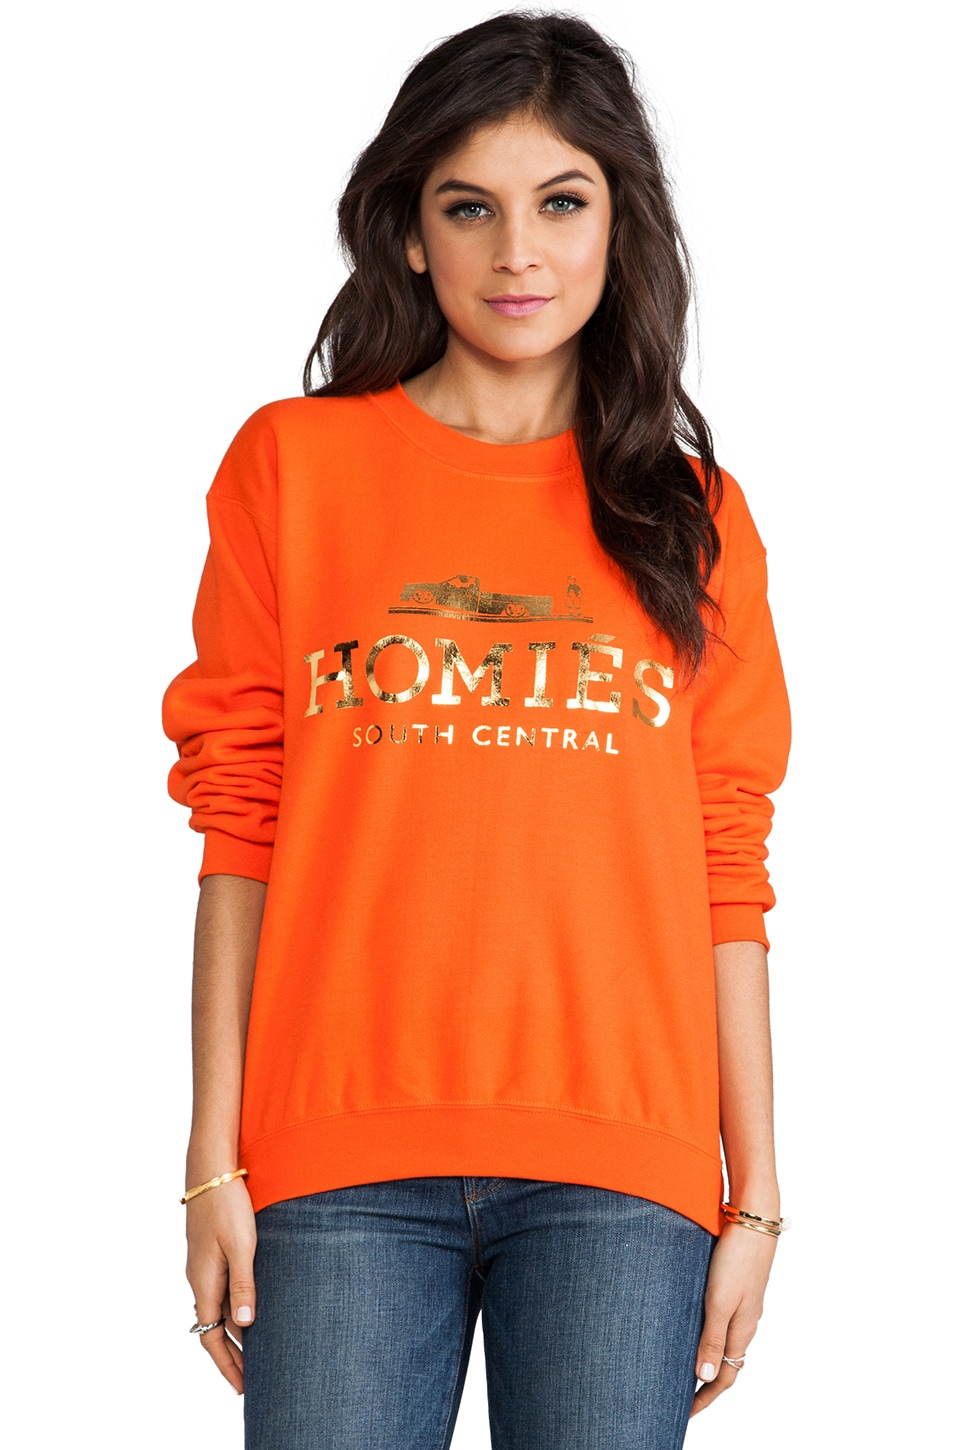 Brian Lichtenberg Homies Sweatshirt in Orange/Gold-Foil